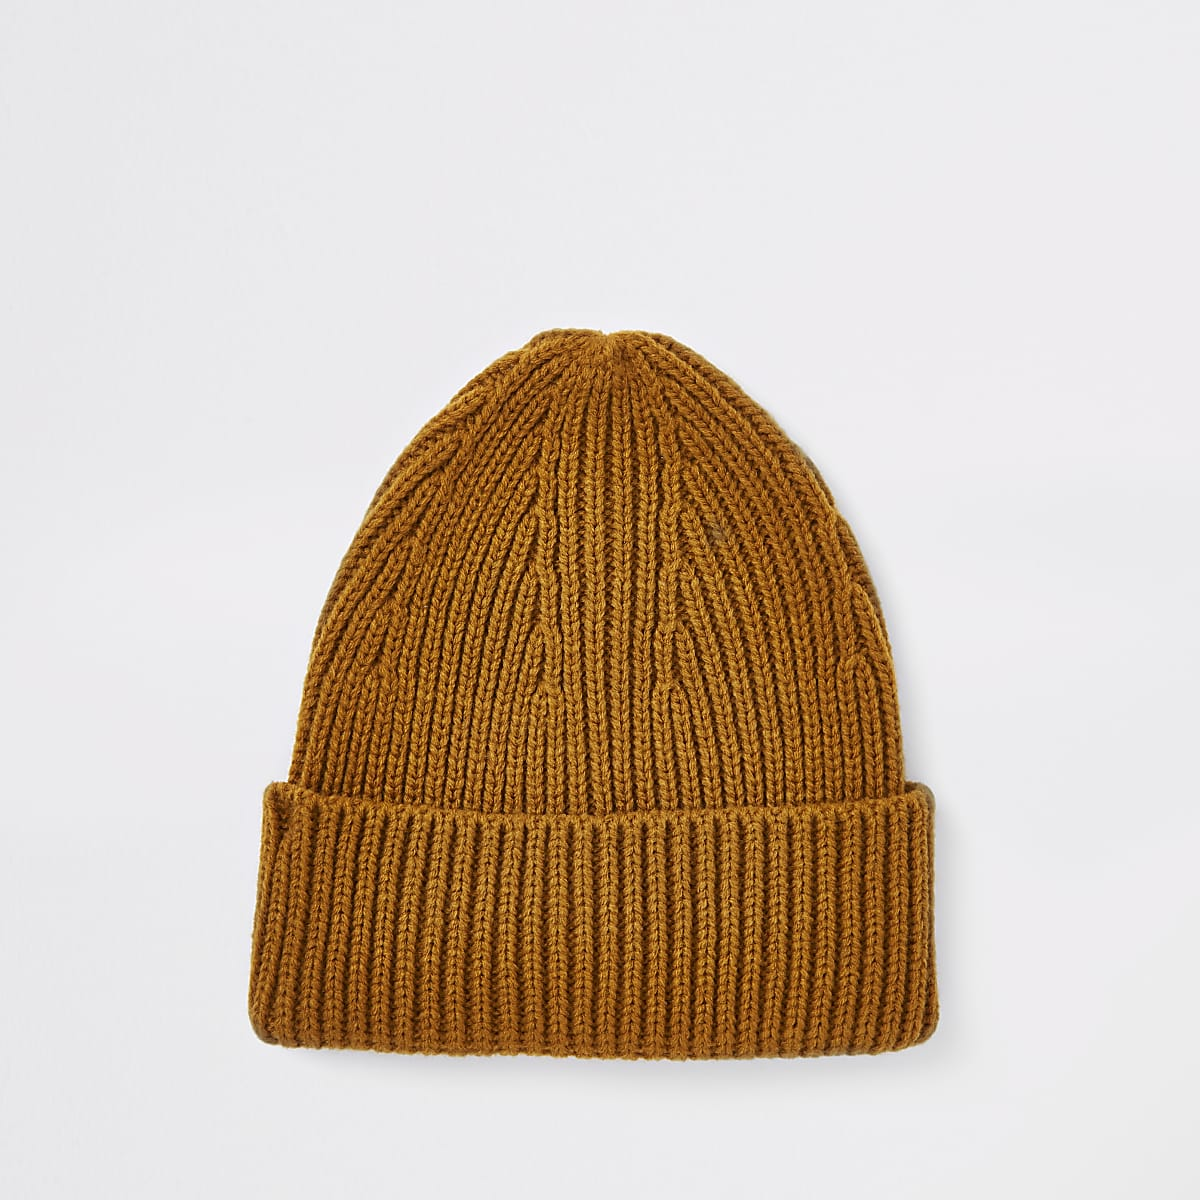 Yellow fisherman beanie hat